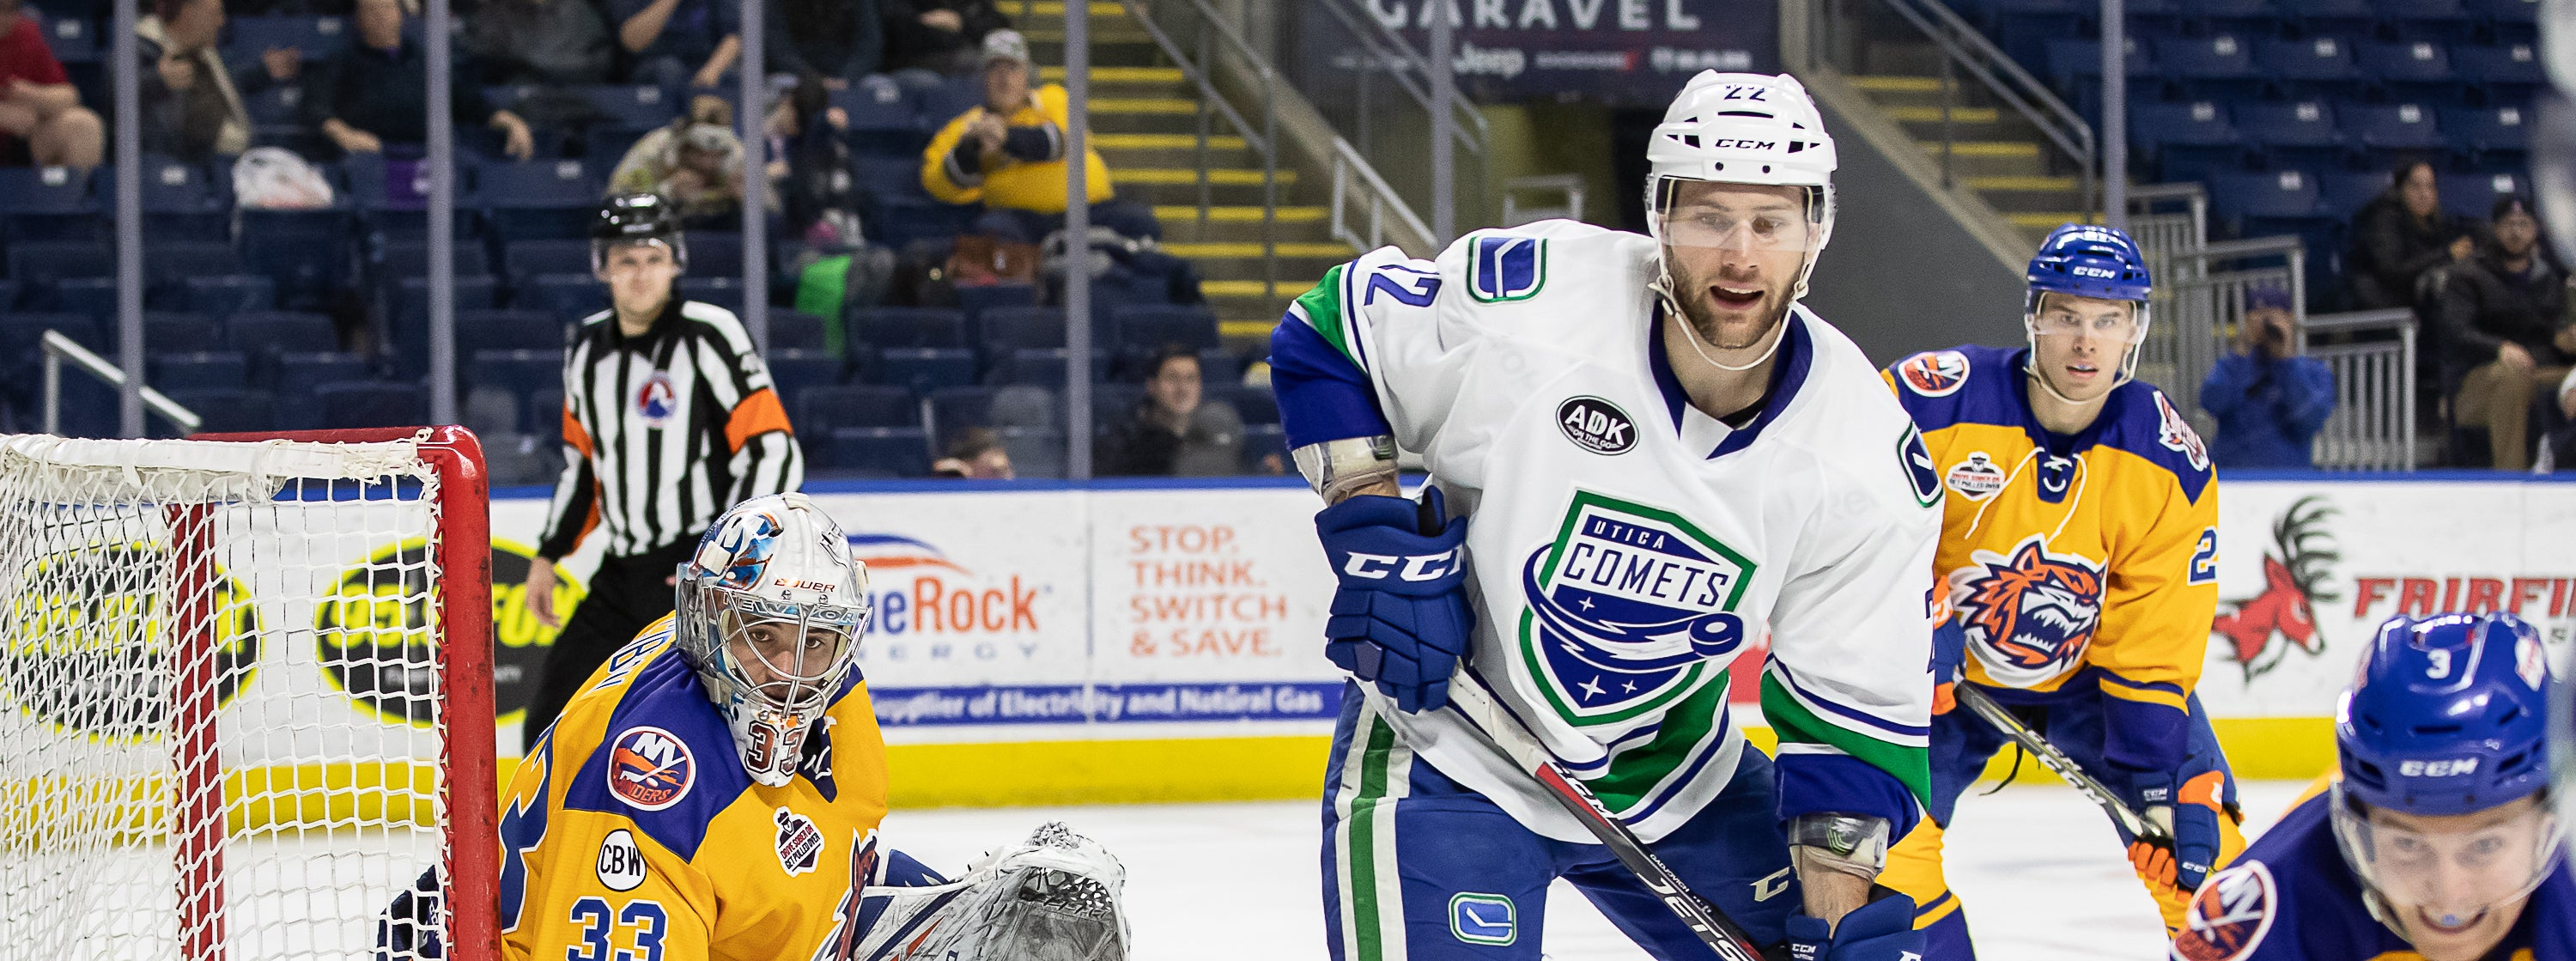 COMETS EARN ROAD POINT IN OVERTIME LOSS TO BRIDGEPORT